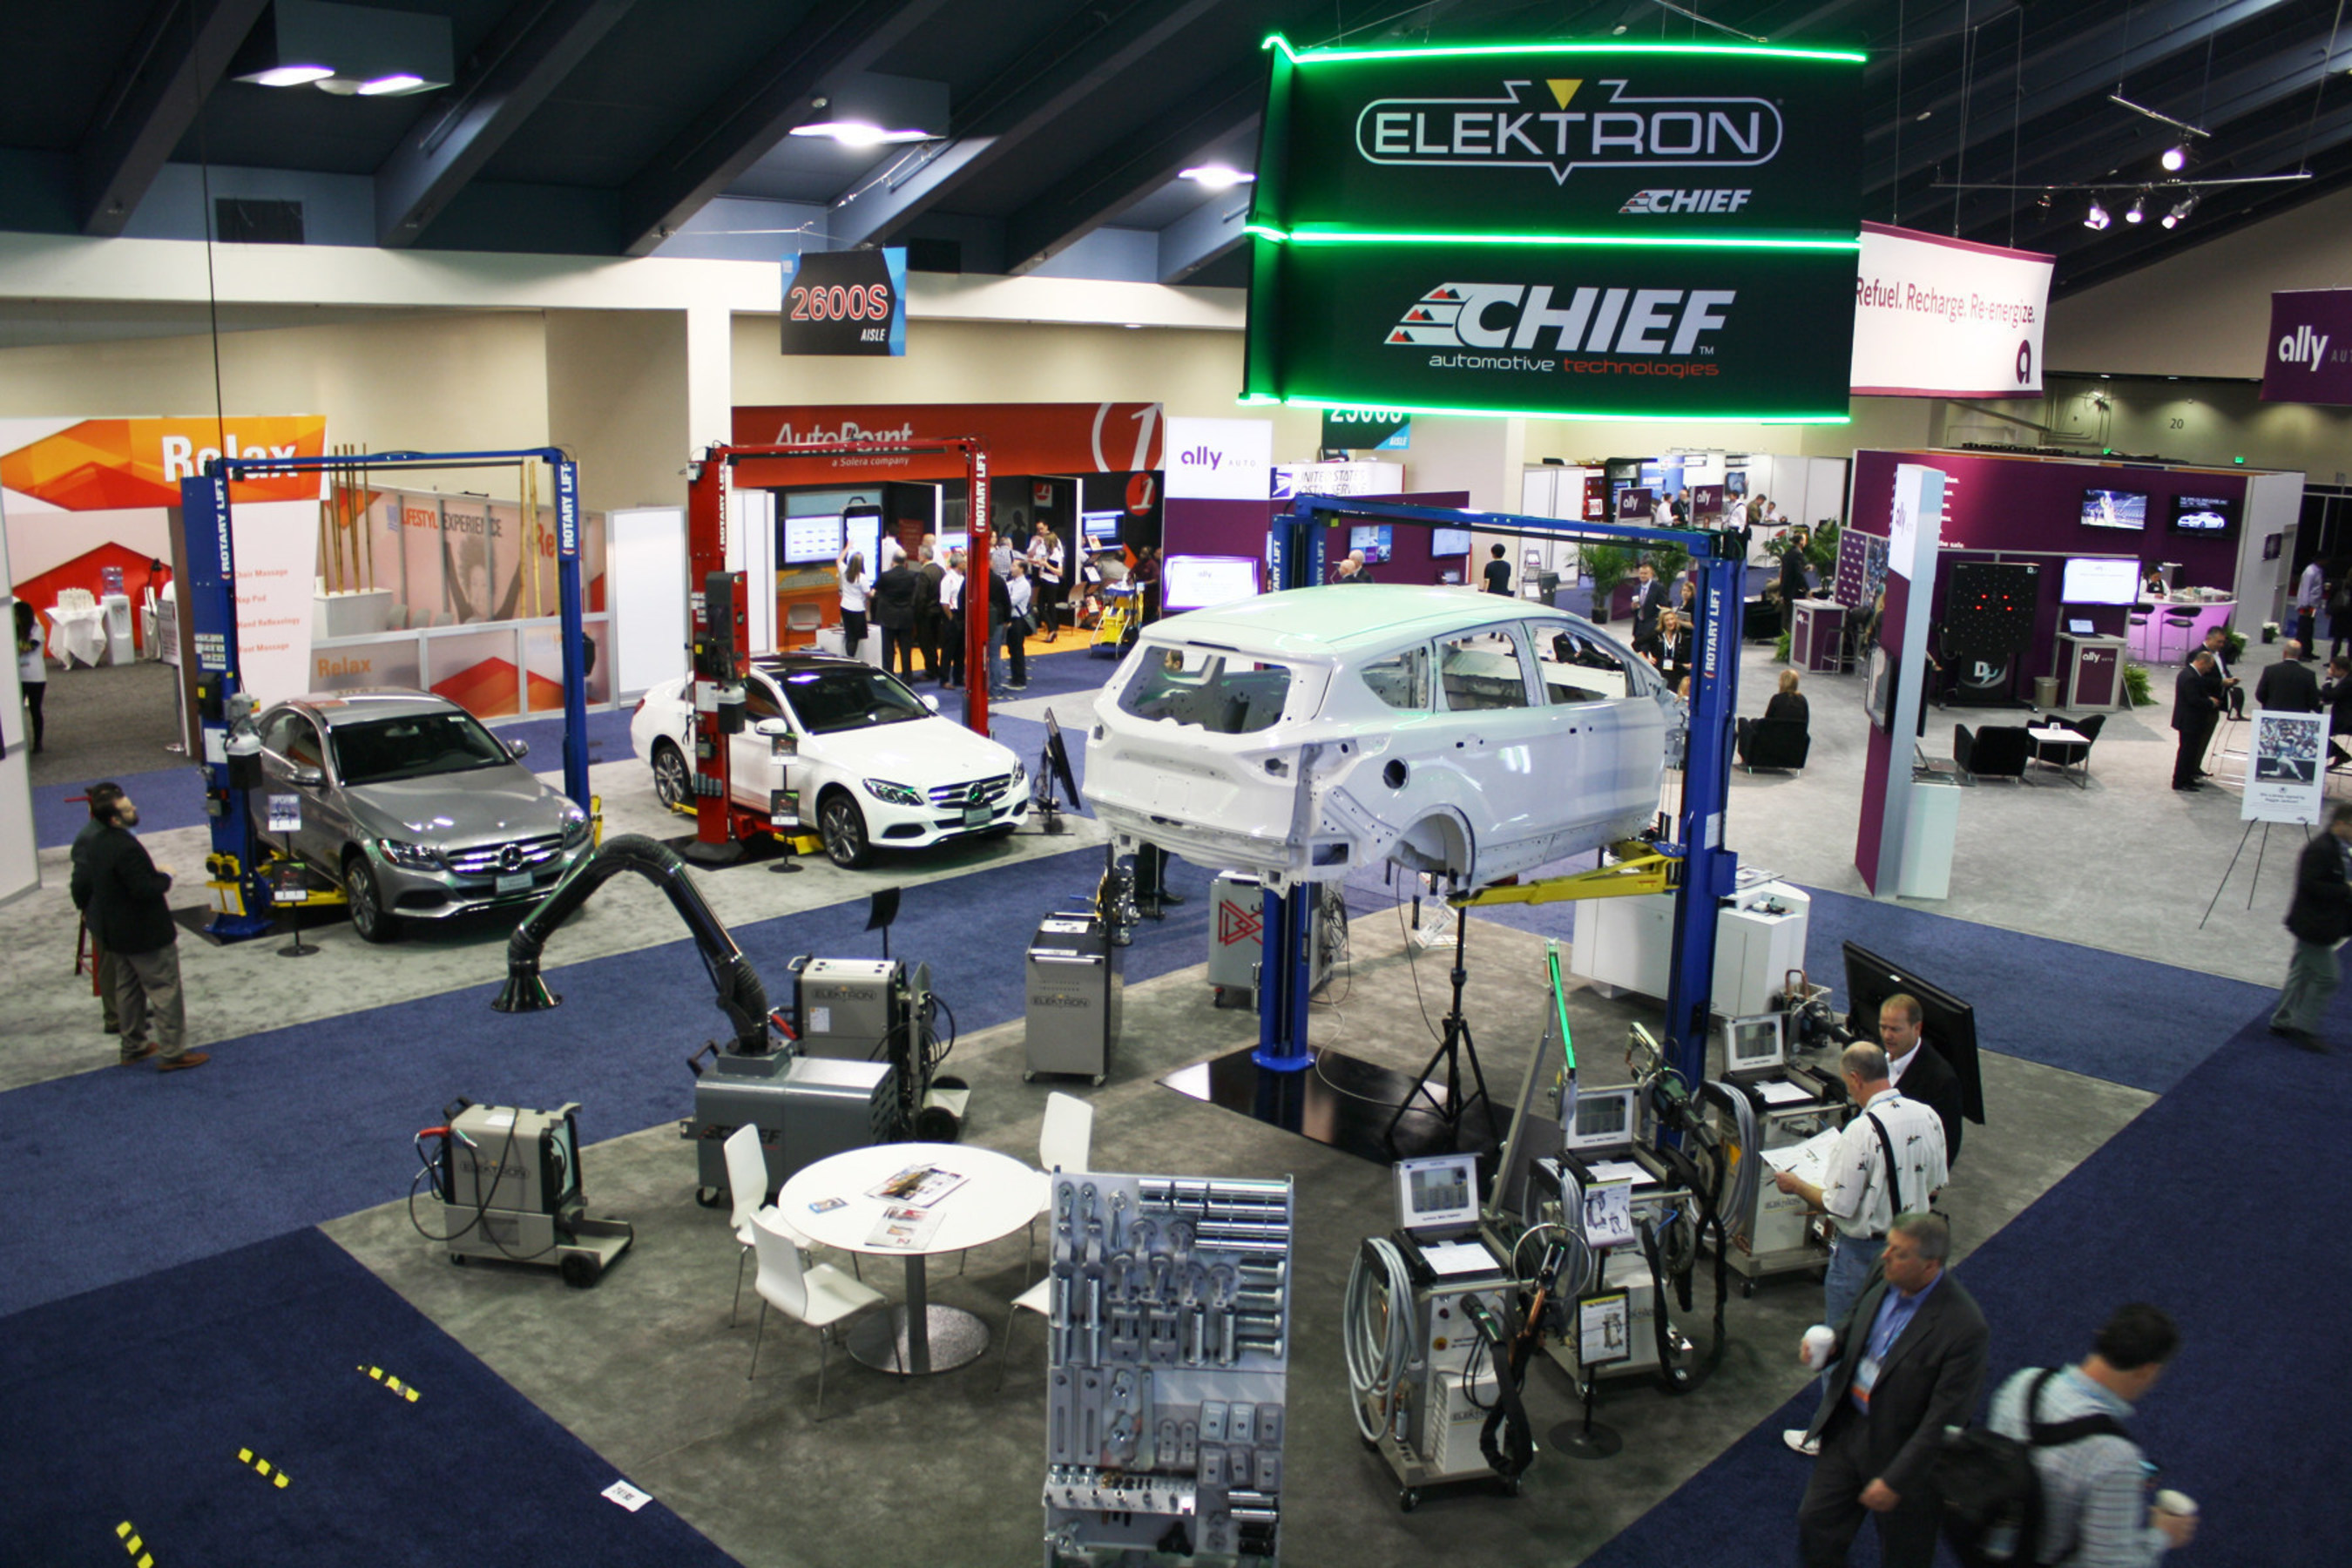 Chief to Show New Globaljig Bench, Expanded Line of Collision Repair Equipment at NADA Expo